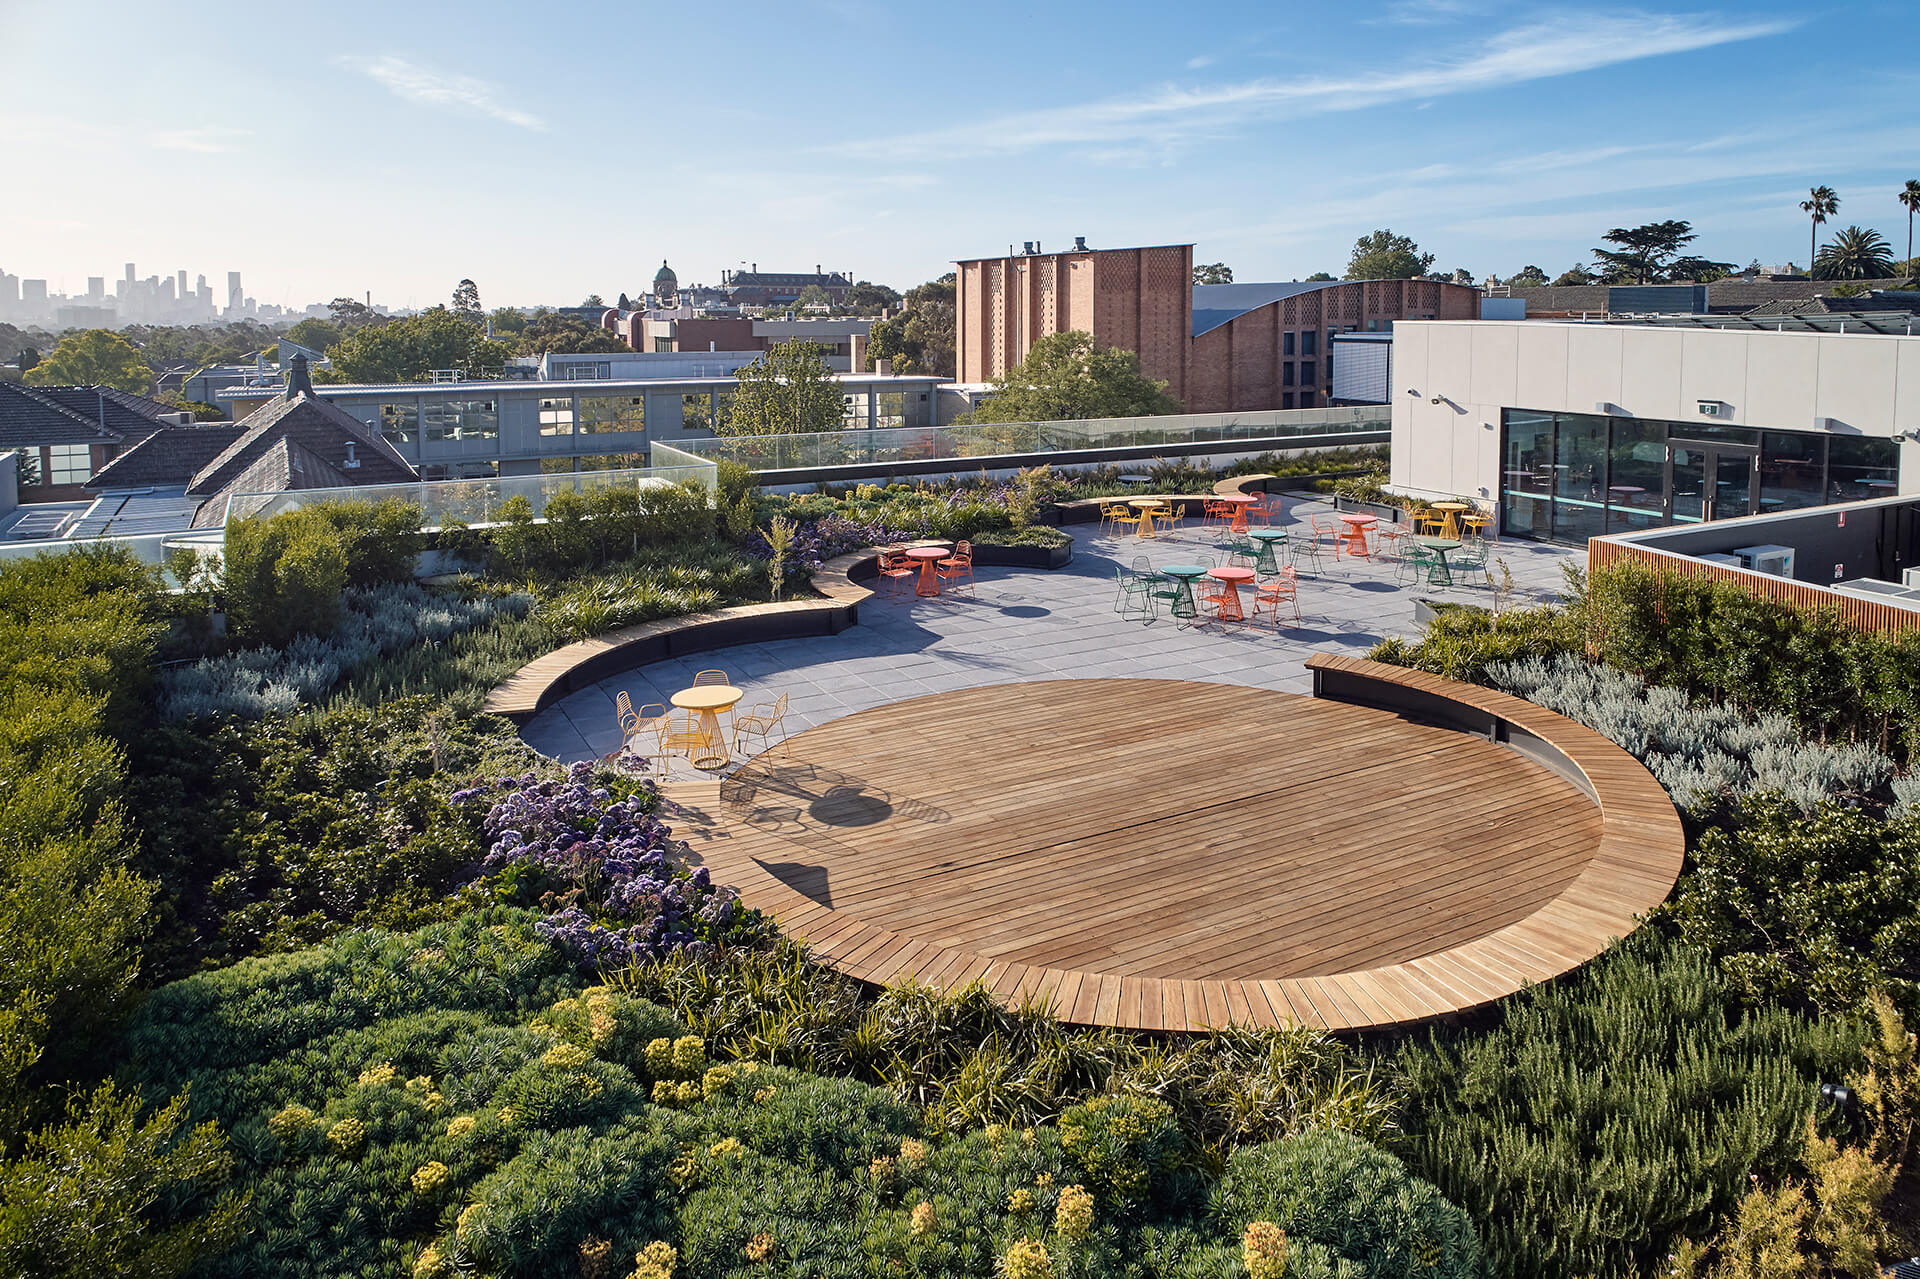 The green roof creates a sense of openness and brings natural light into the adjoining spaces | MLC Nicholas Learning Centre by Mcildowie Partners | STIRworld